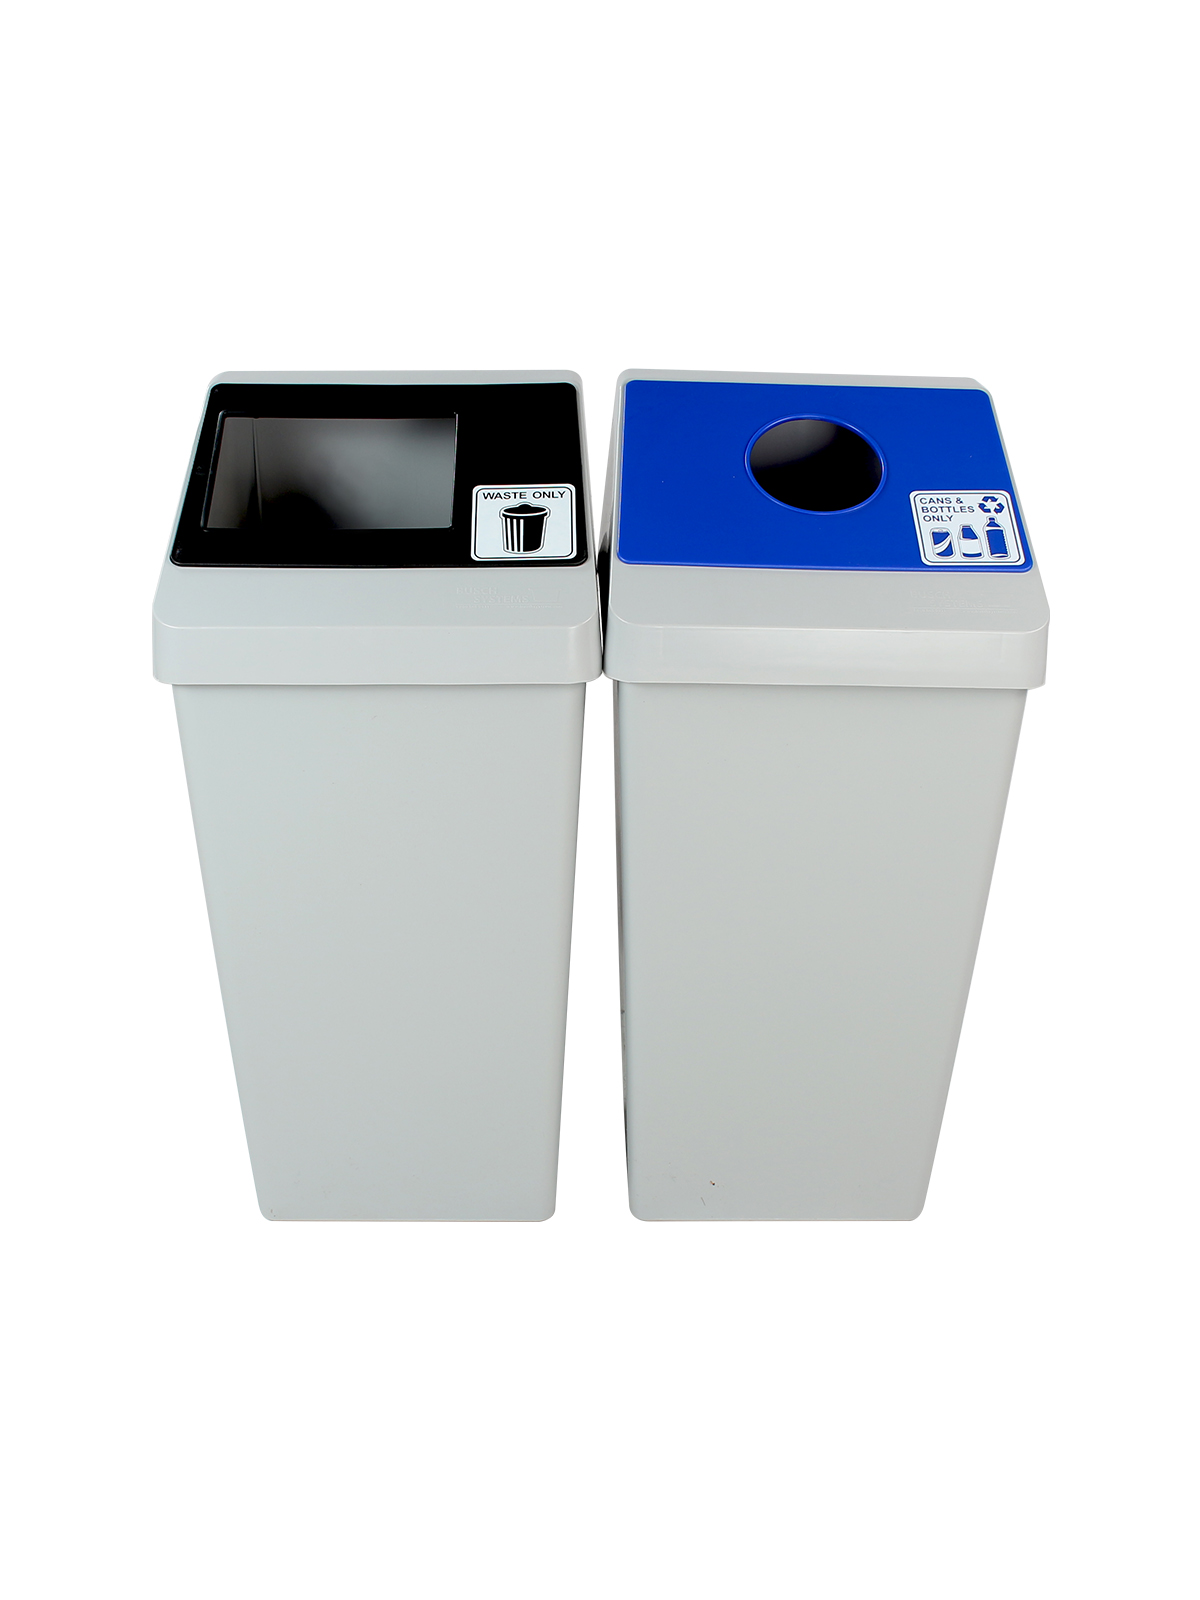 SMART SORT - DOUBLE - CIRCLE | FULL - GREY | BLUE |BLACK - CANS & BOTTLES ONLY | WASTE ONLY title=